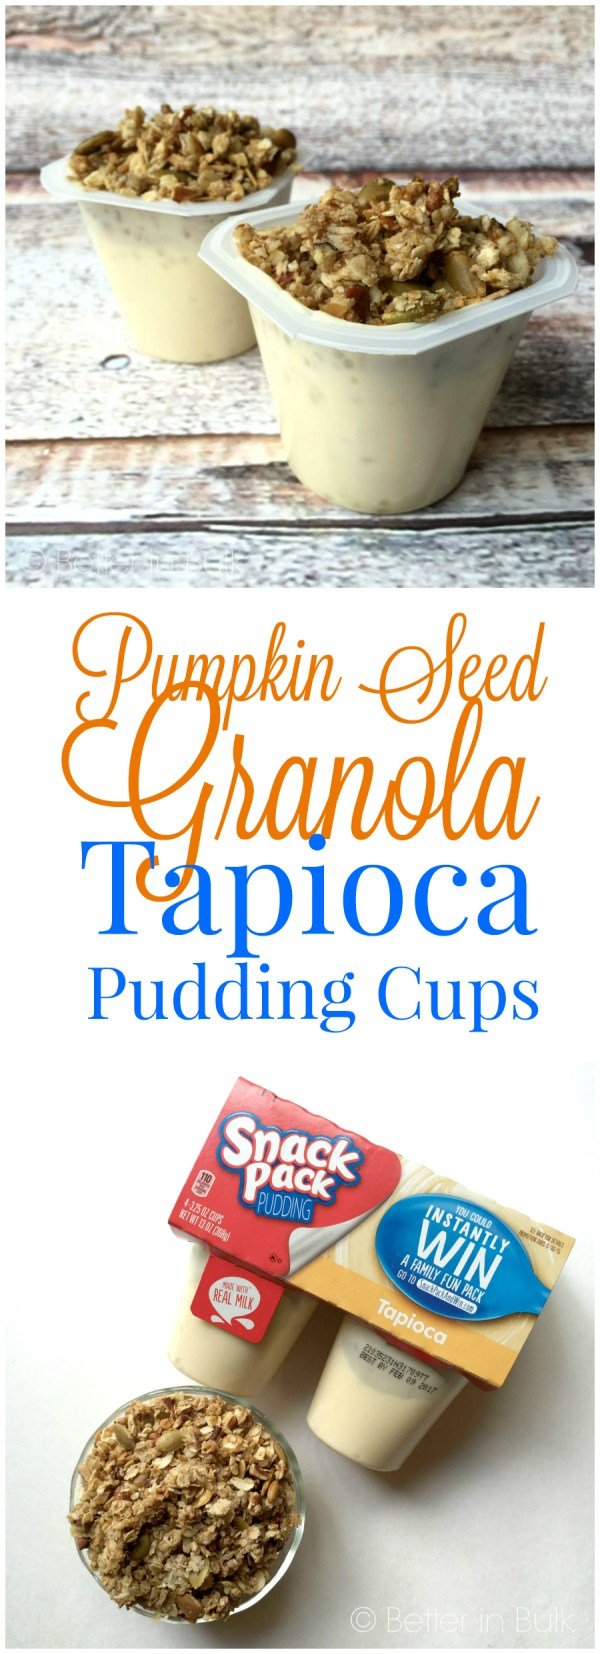 Pumpkin Seed Granola Tapioca Pudding Cups Halloween recipe from Better in Bulk